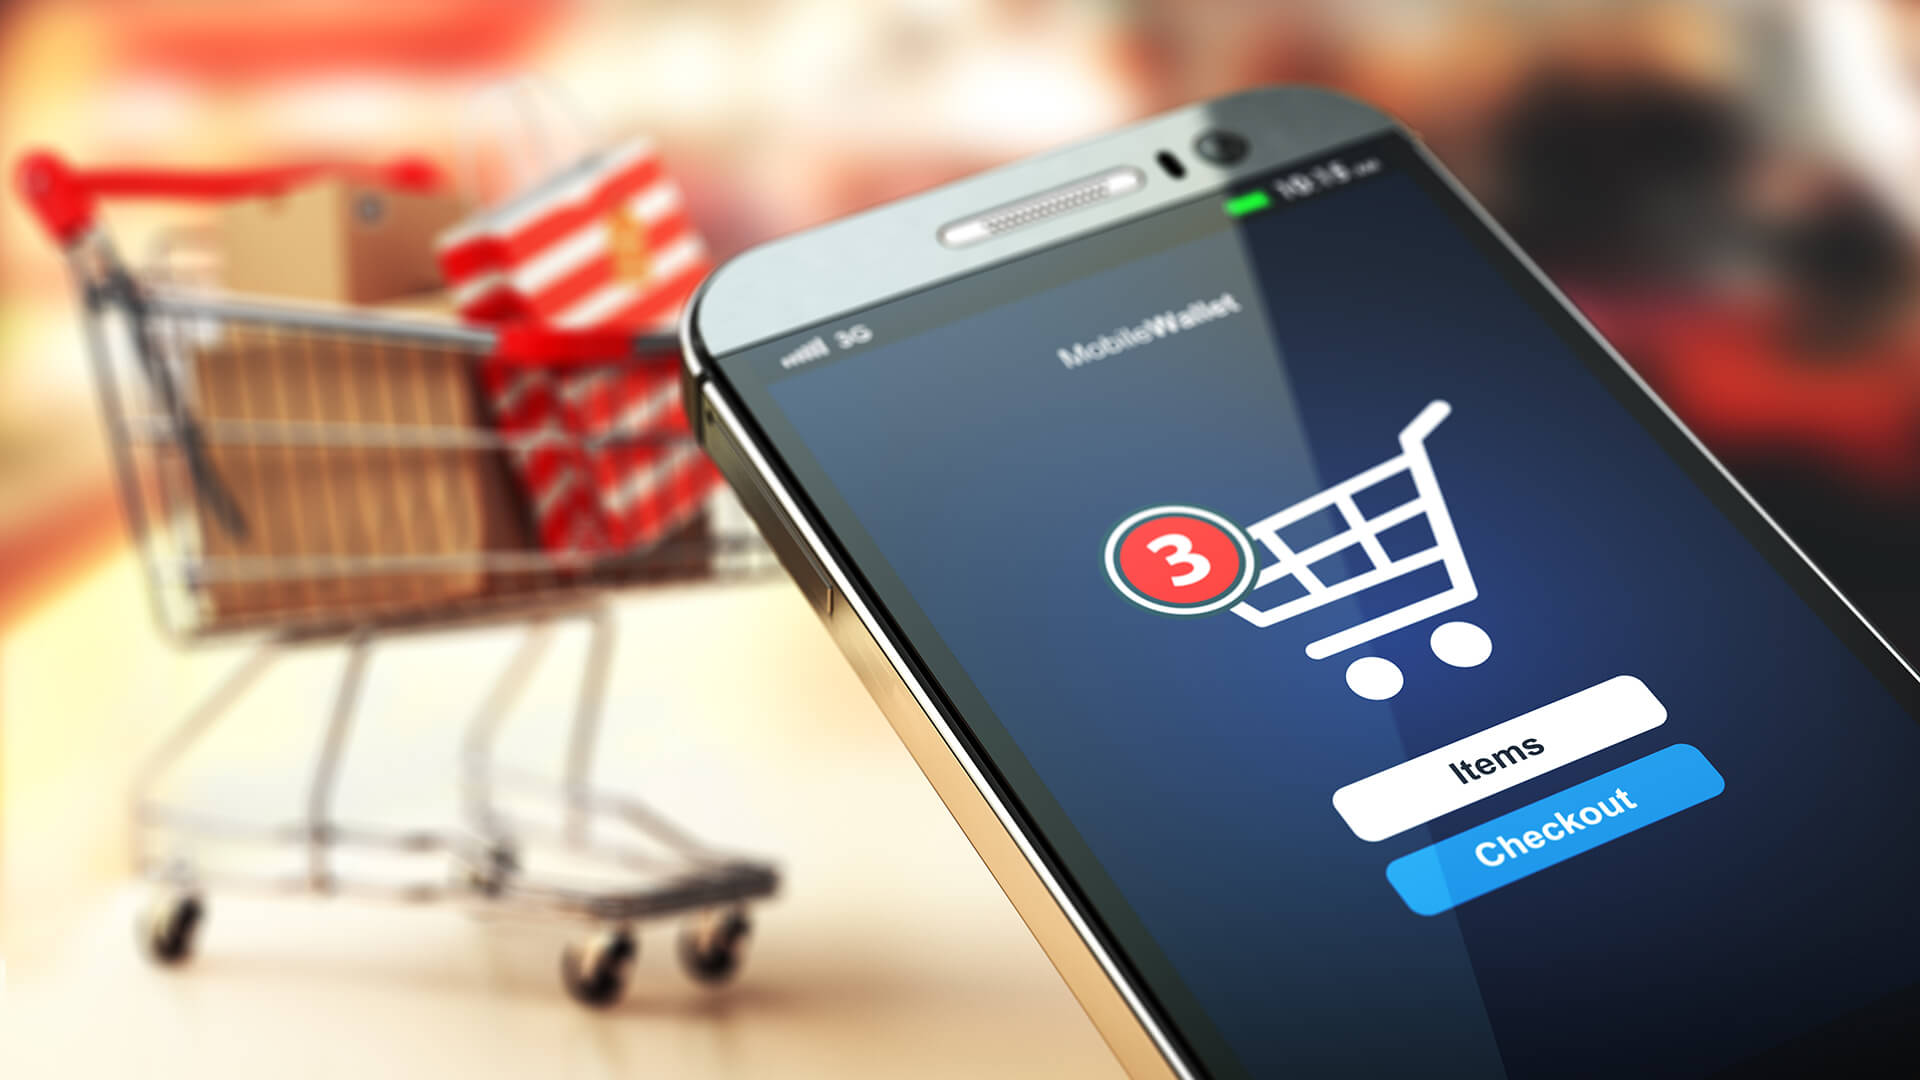 eCommerce mCommerce retail mobile